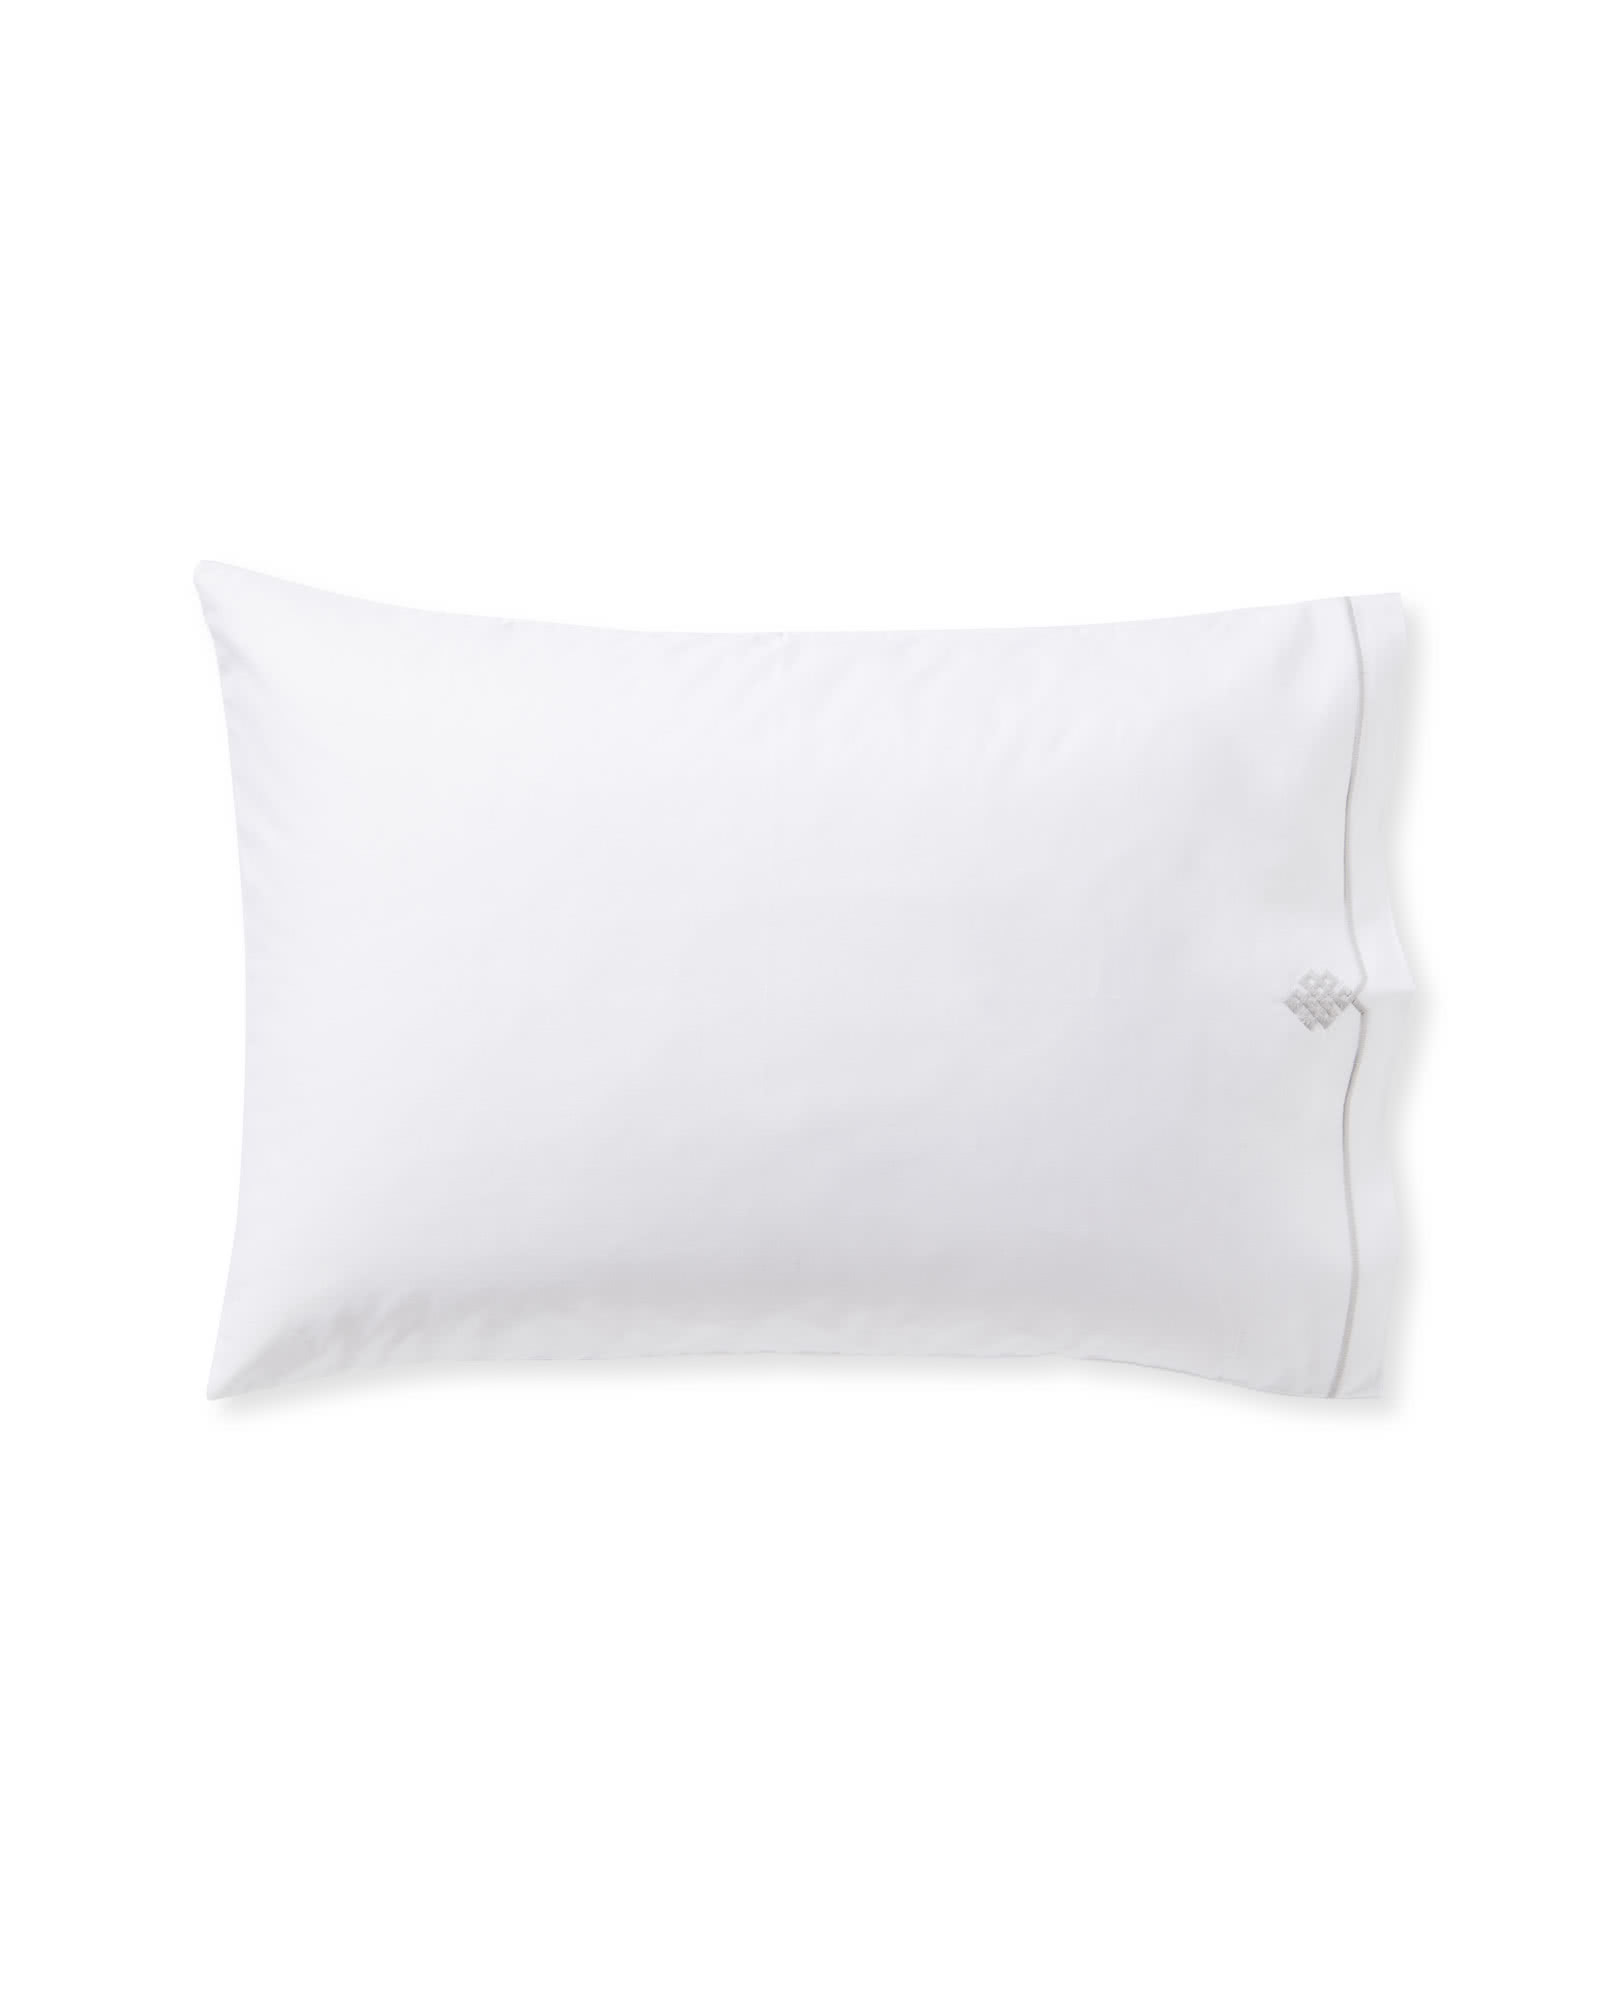 Soho Pillowcases (Set of 2), Fog